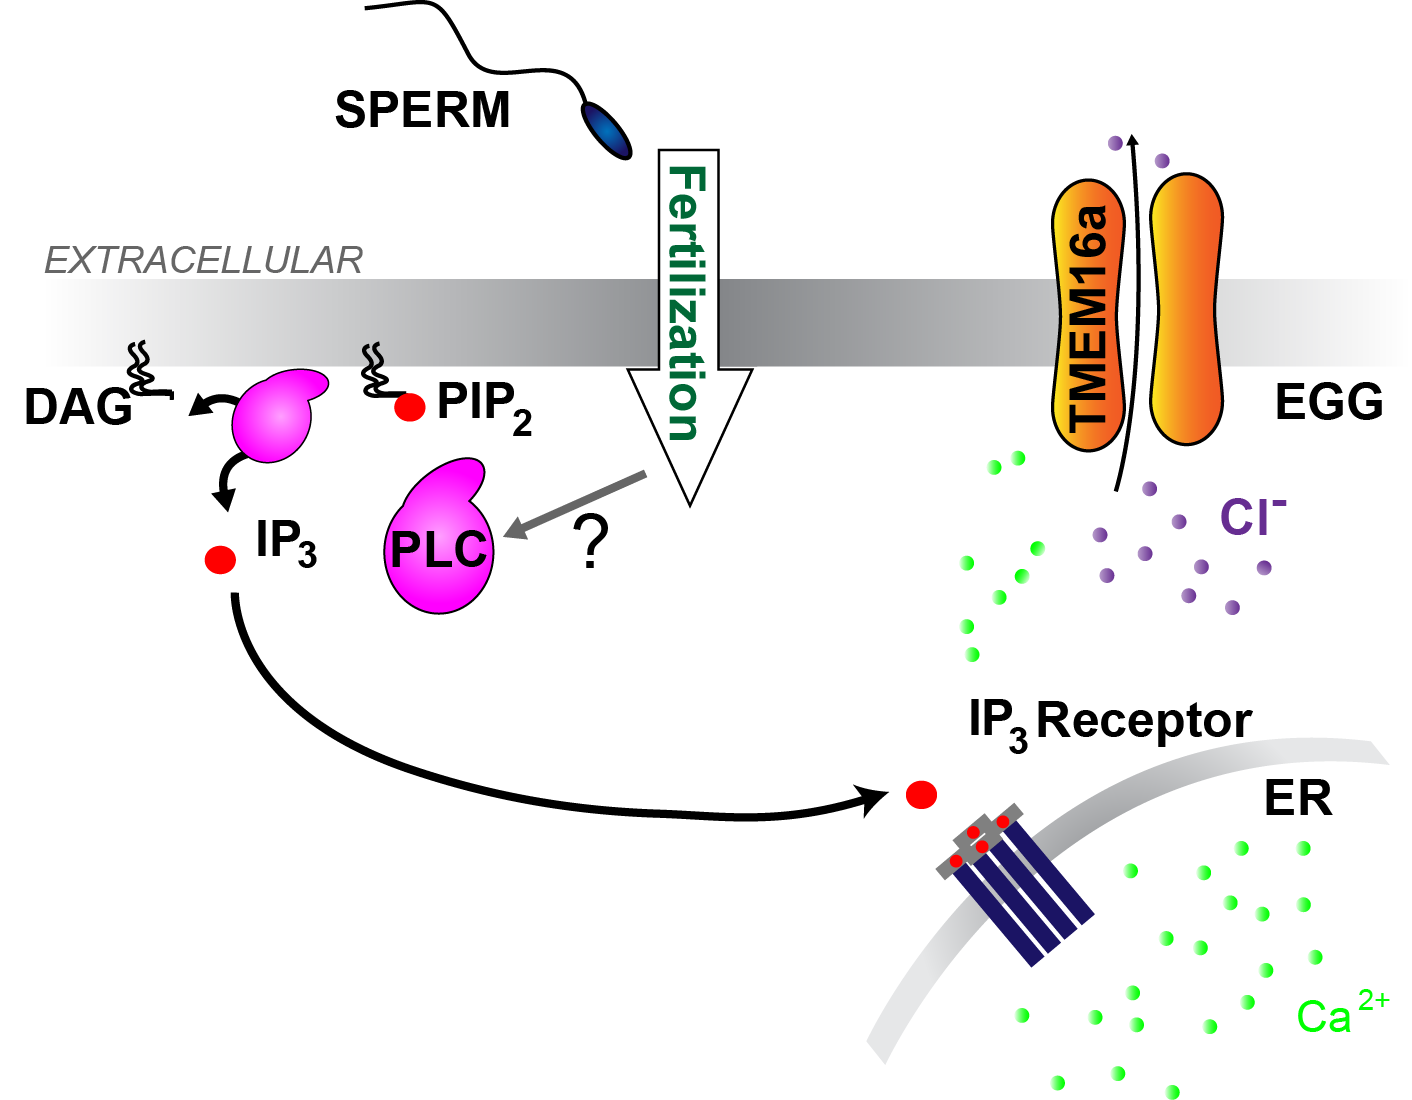 The fast block to polyspermy in X. laevis eggs is activated by PLC induced production of IP3, Ca2+ release from the ER, and opening of TMEM16A channels.